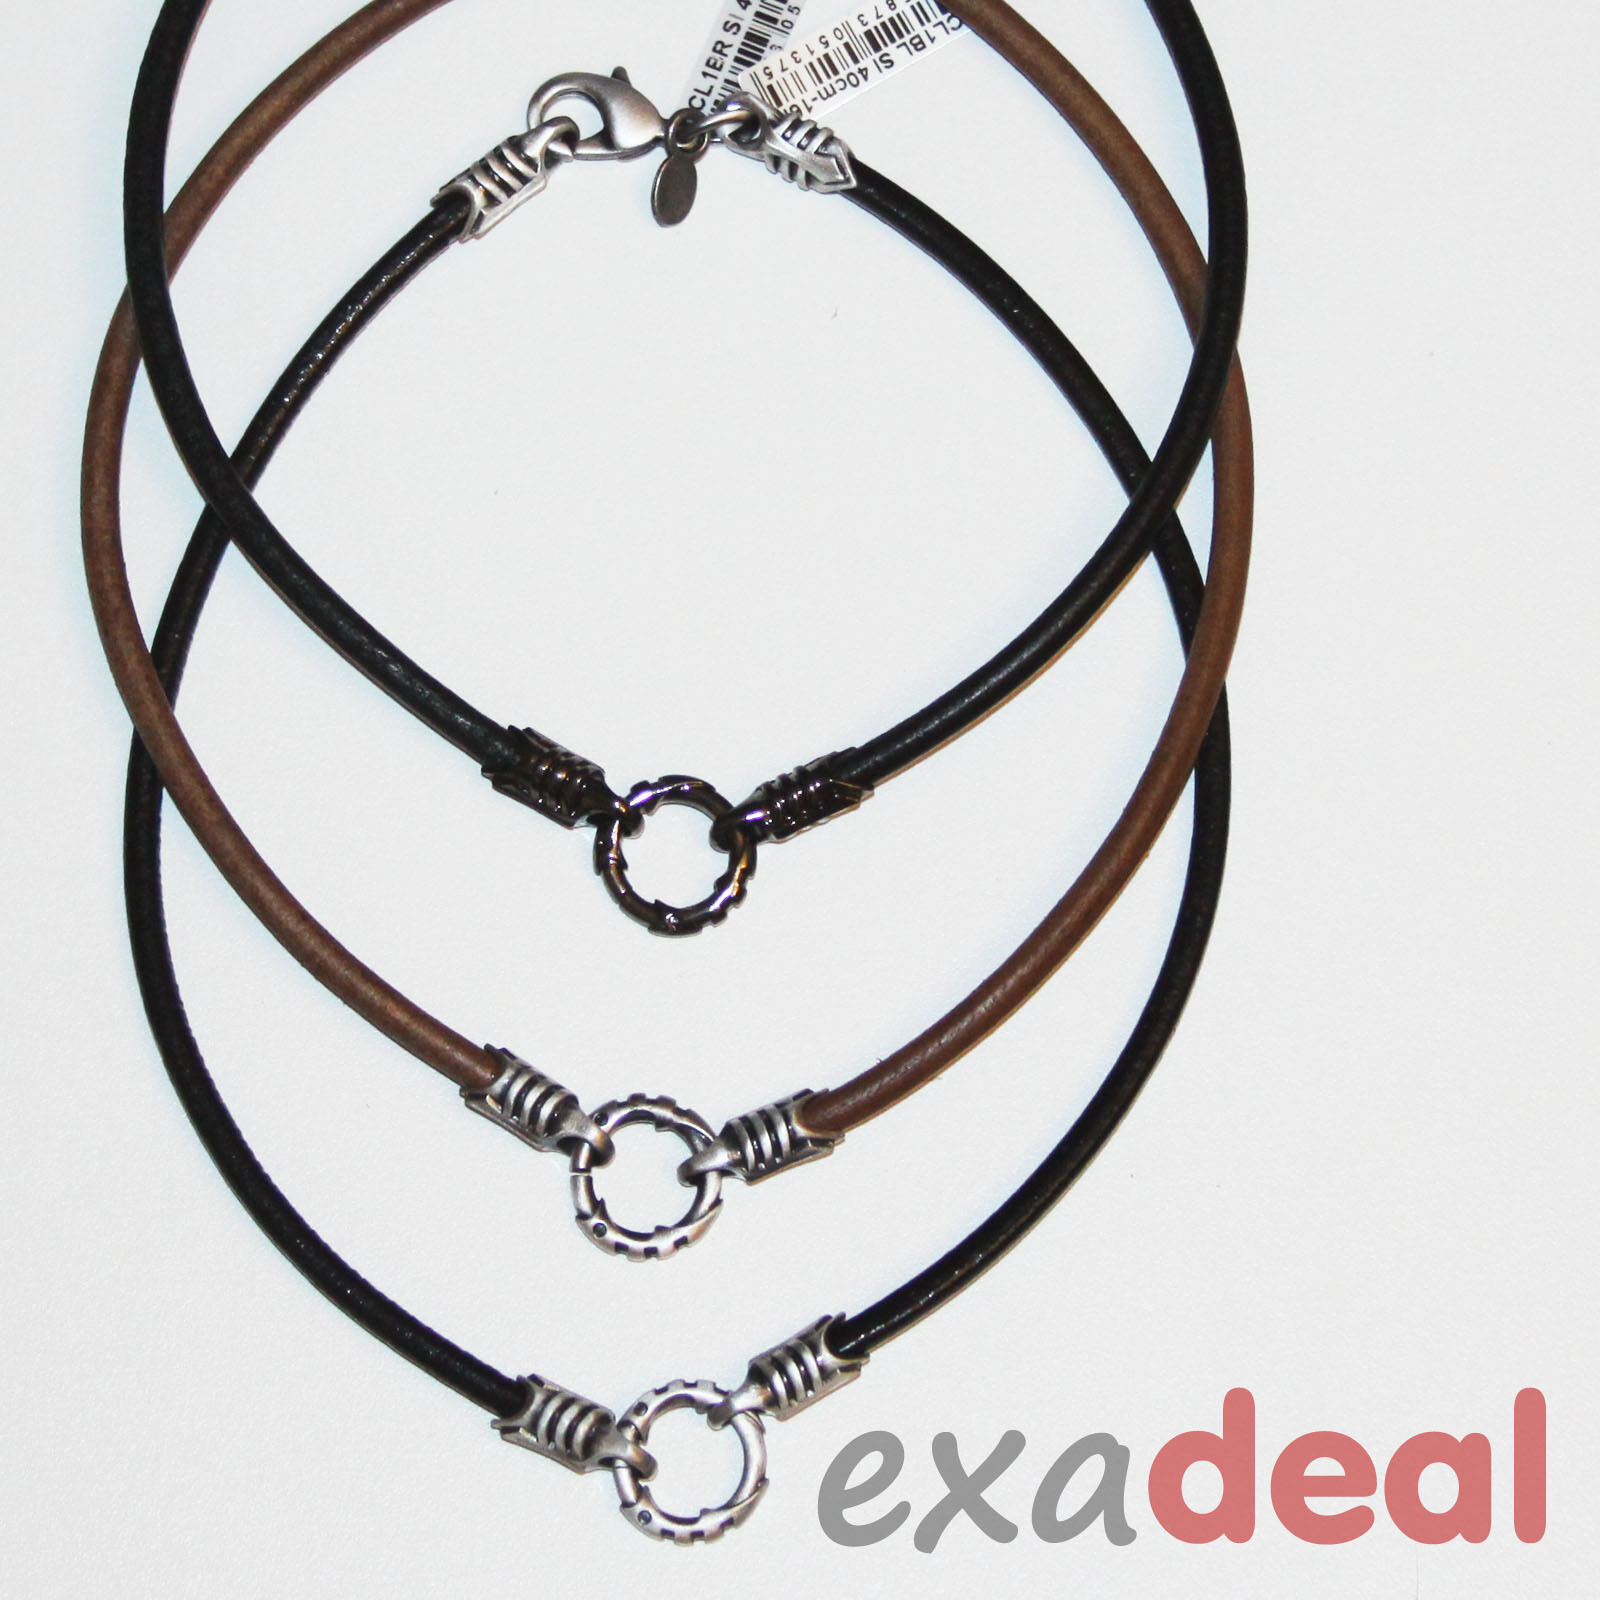 necklace clasps amazon jewelry steel brown com stainless cord with inches leather dp black